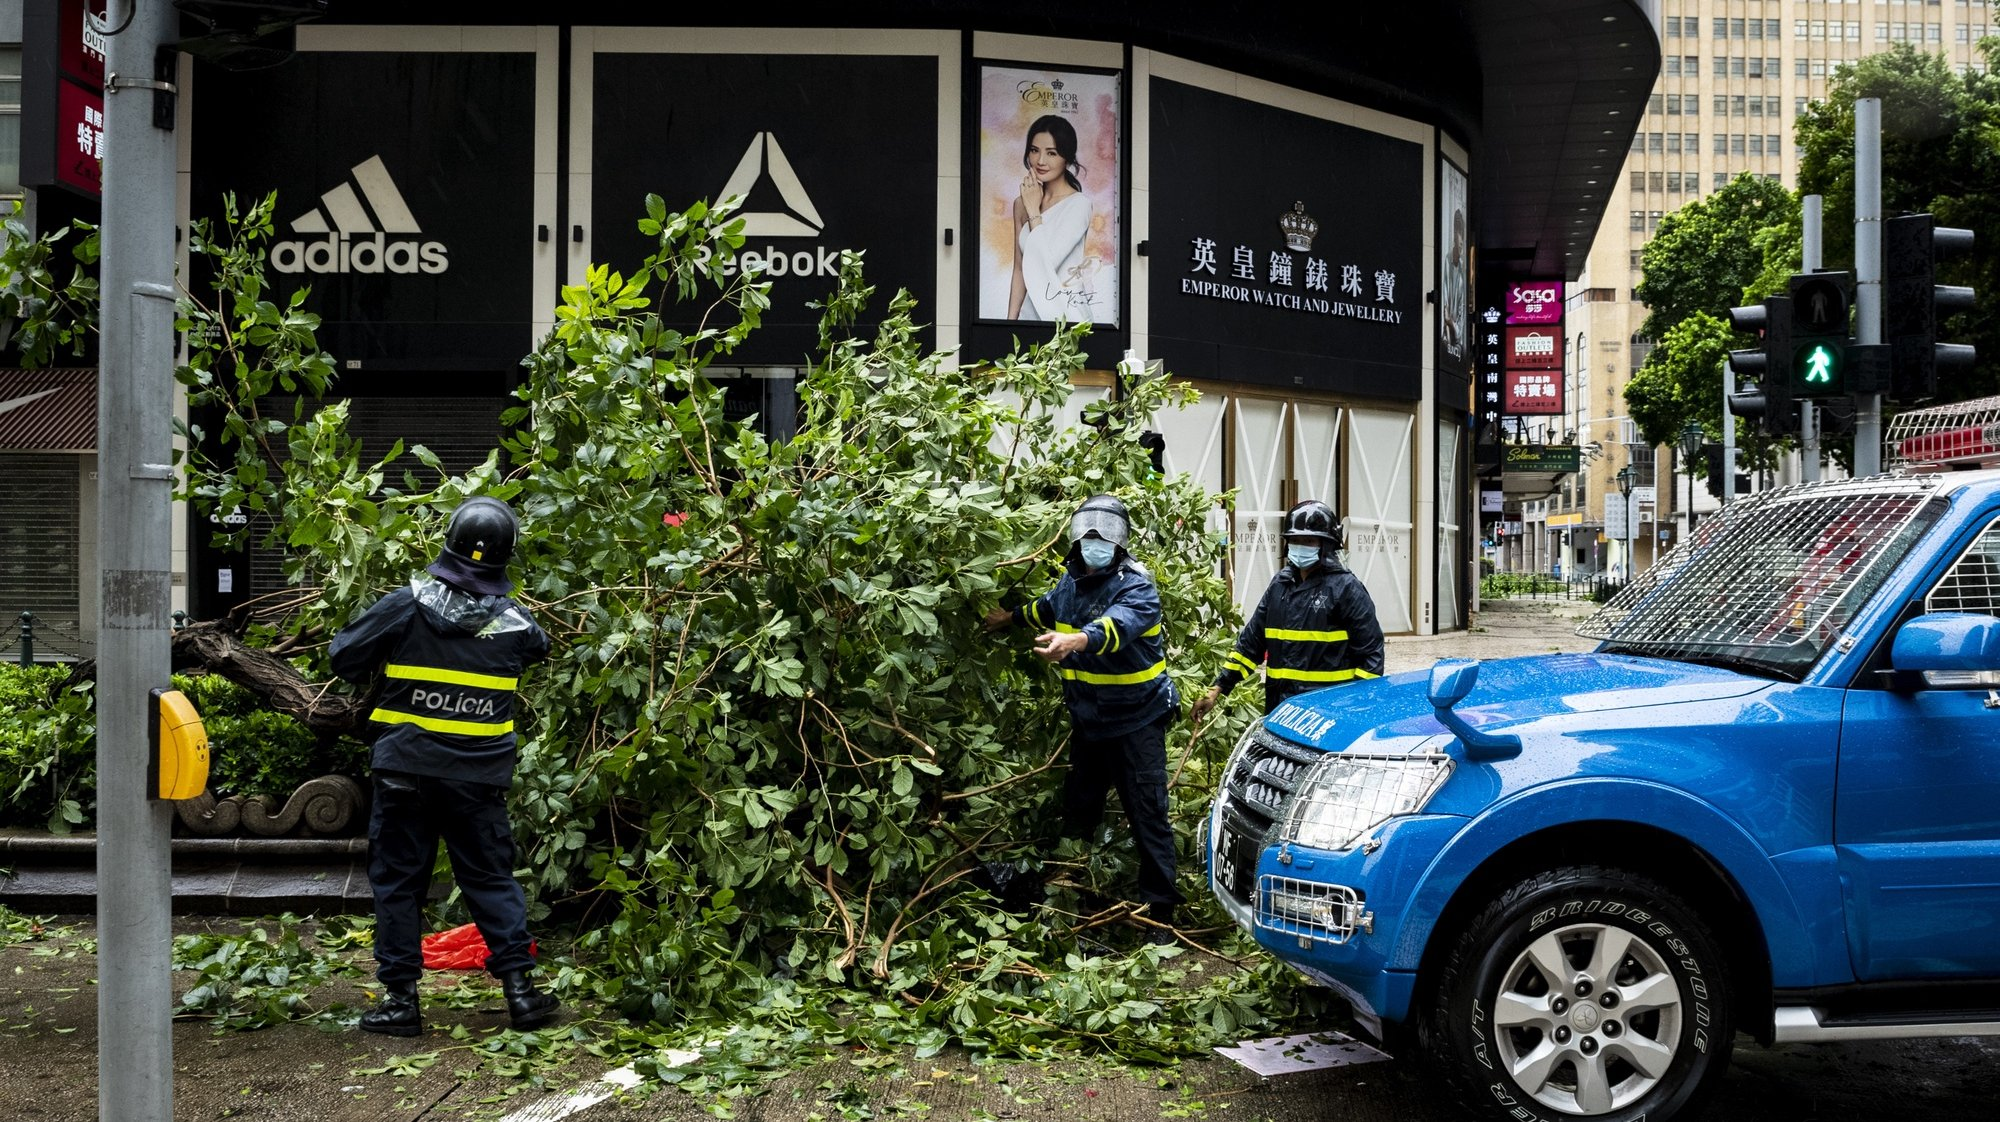 epa08612362 City workers remove an uprooted tree after Tropical storm Higos had passed very close to Macao, China, 19 August 2020. Higos is now 100 kilometers northwest of Macau and 'is gradually moving away' from the territory.  EPA/TATIANA LAGES